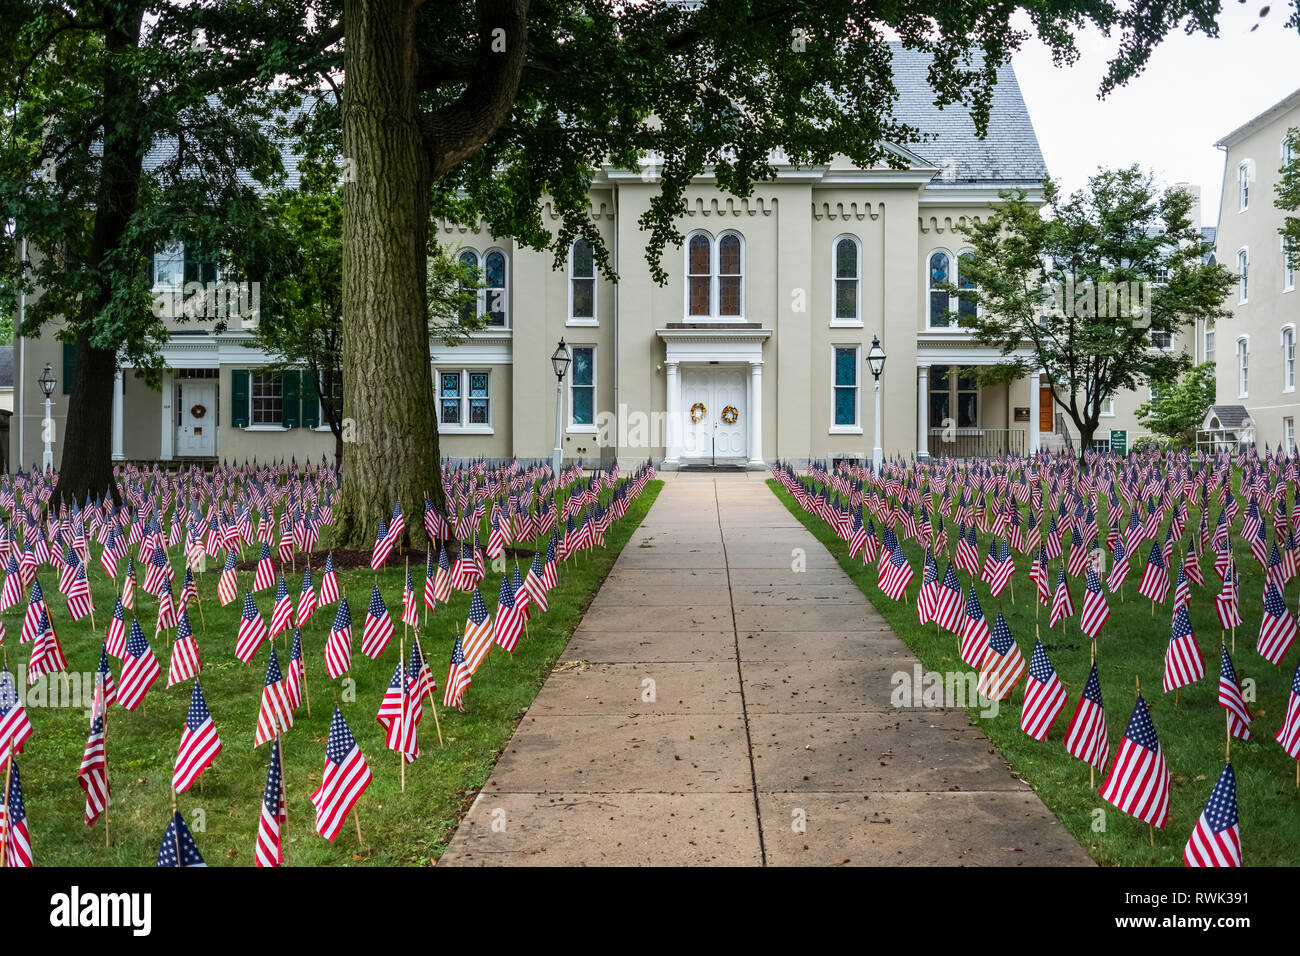 Flags in lawn for July 4 celebration; Lititz, Pennsylvania, United States of America - Stock Image